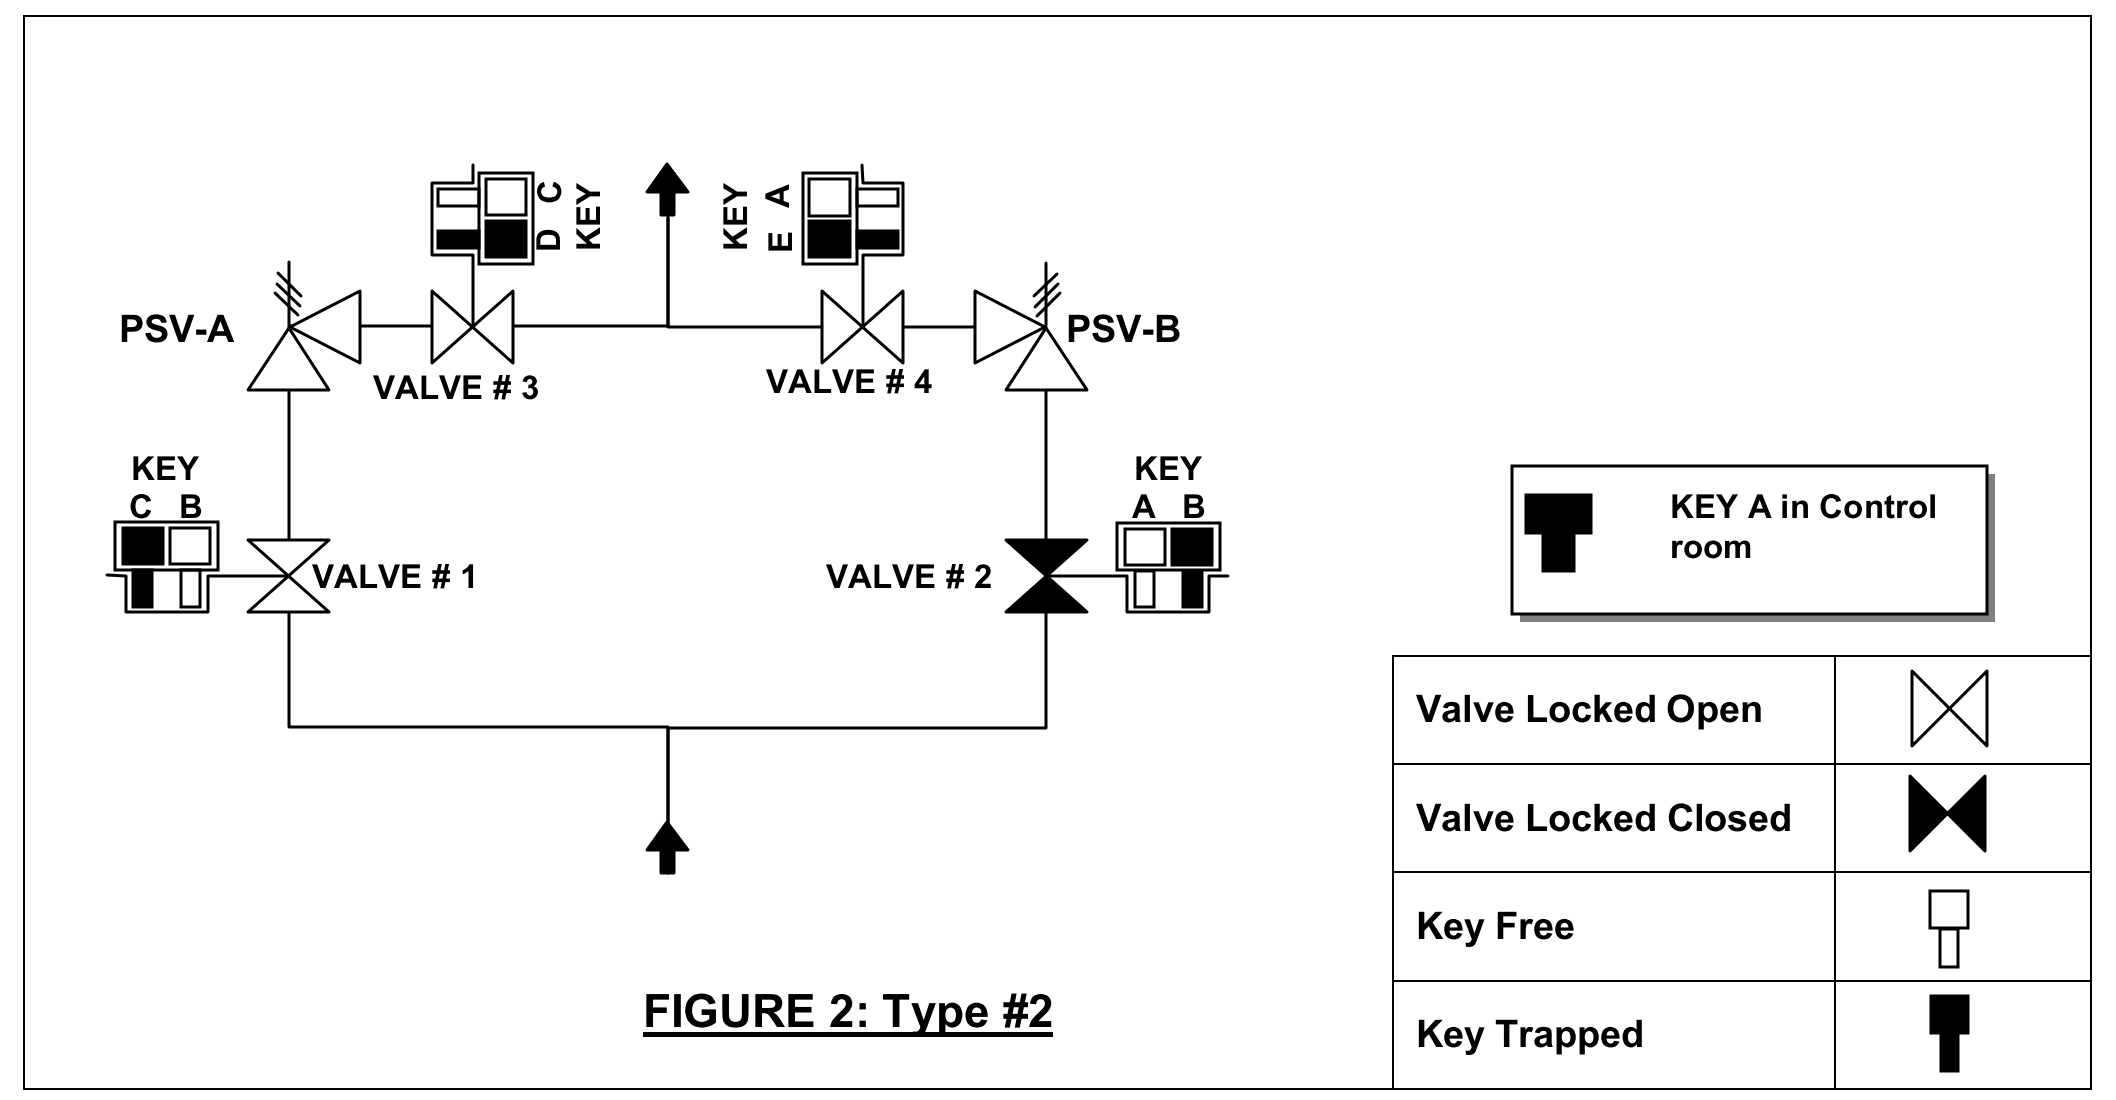 valve-interlock-type#2